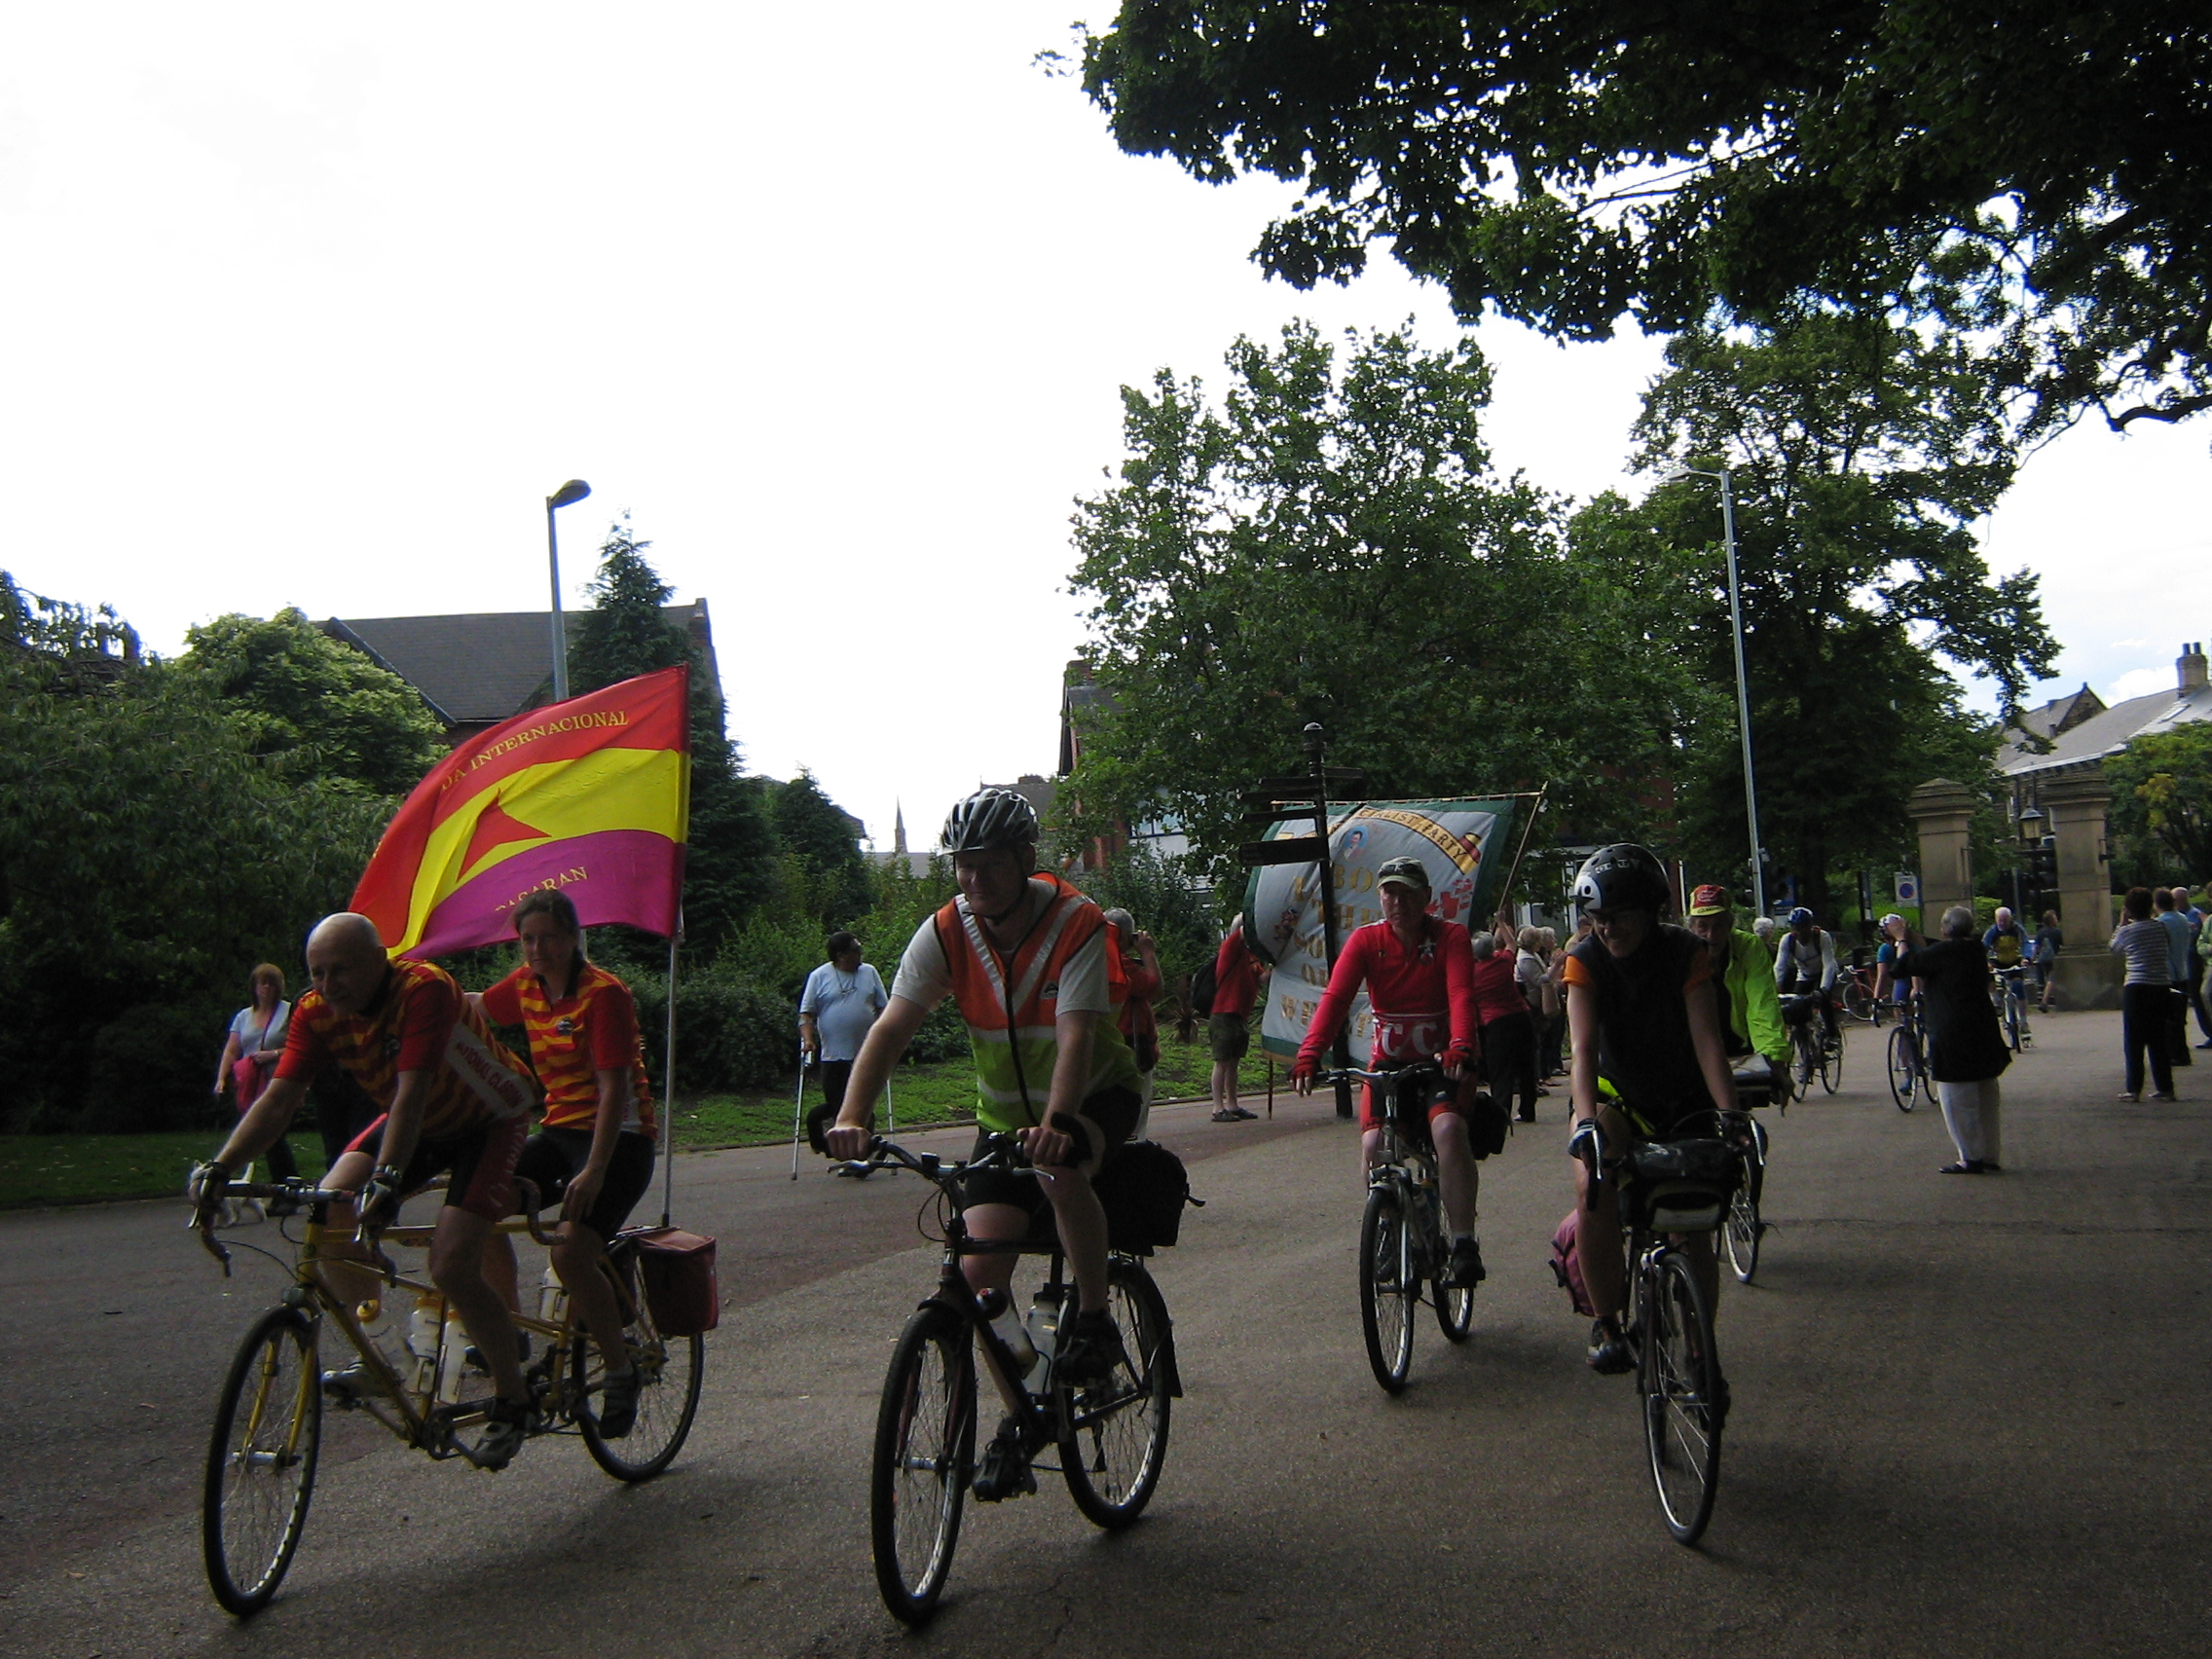 Cyclists entering Clifton Park